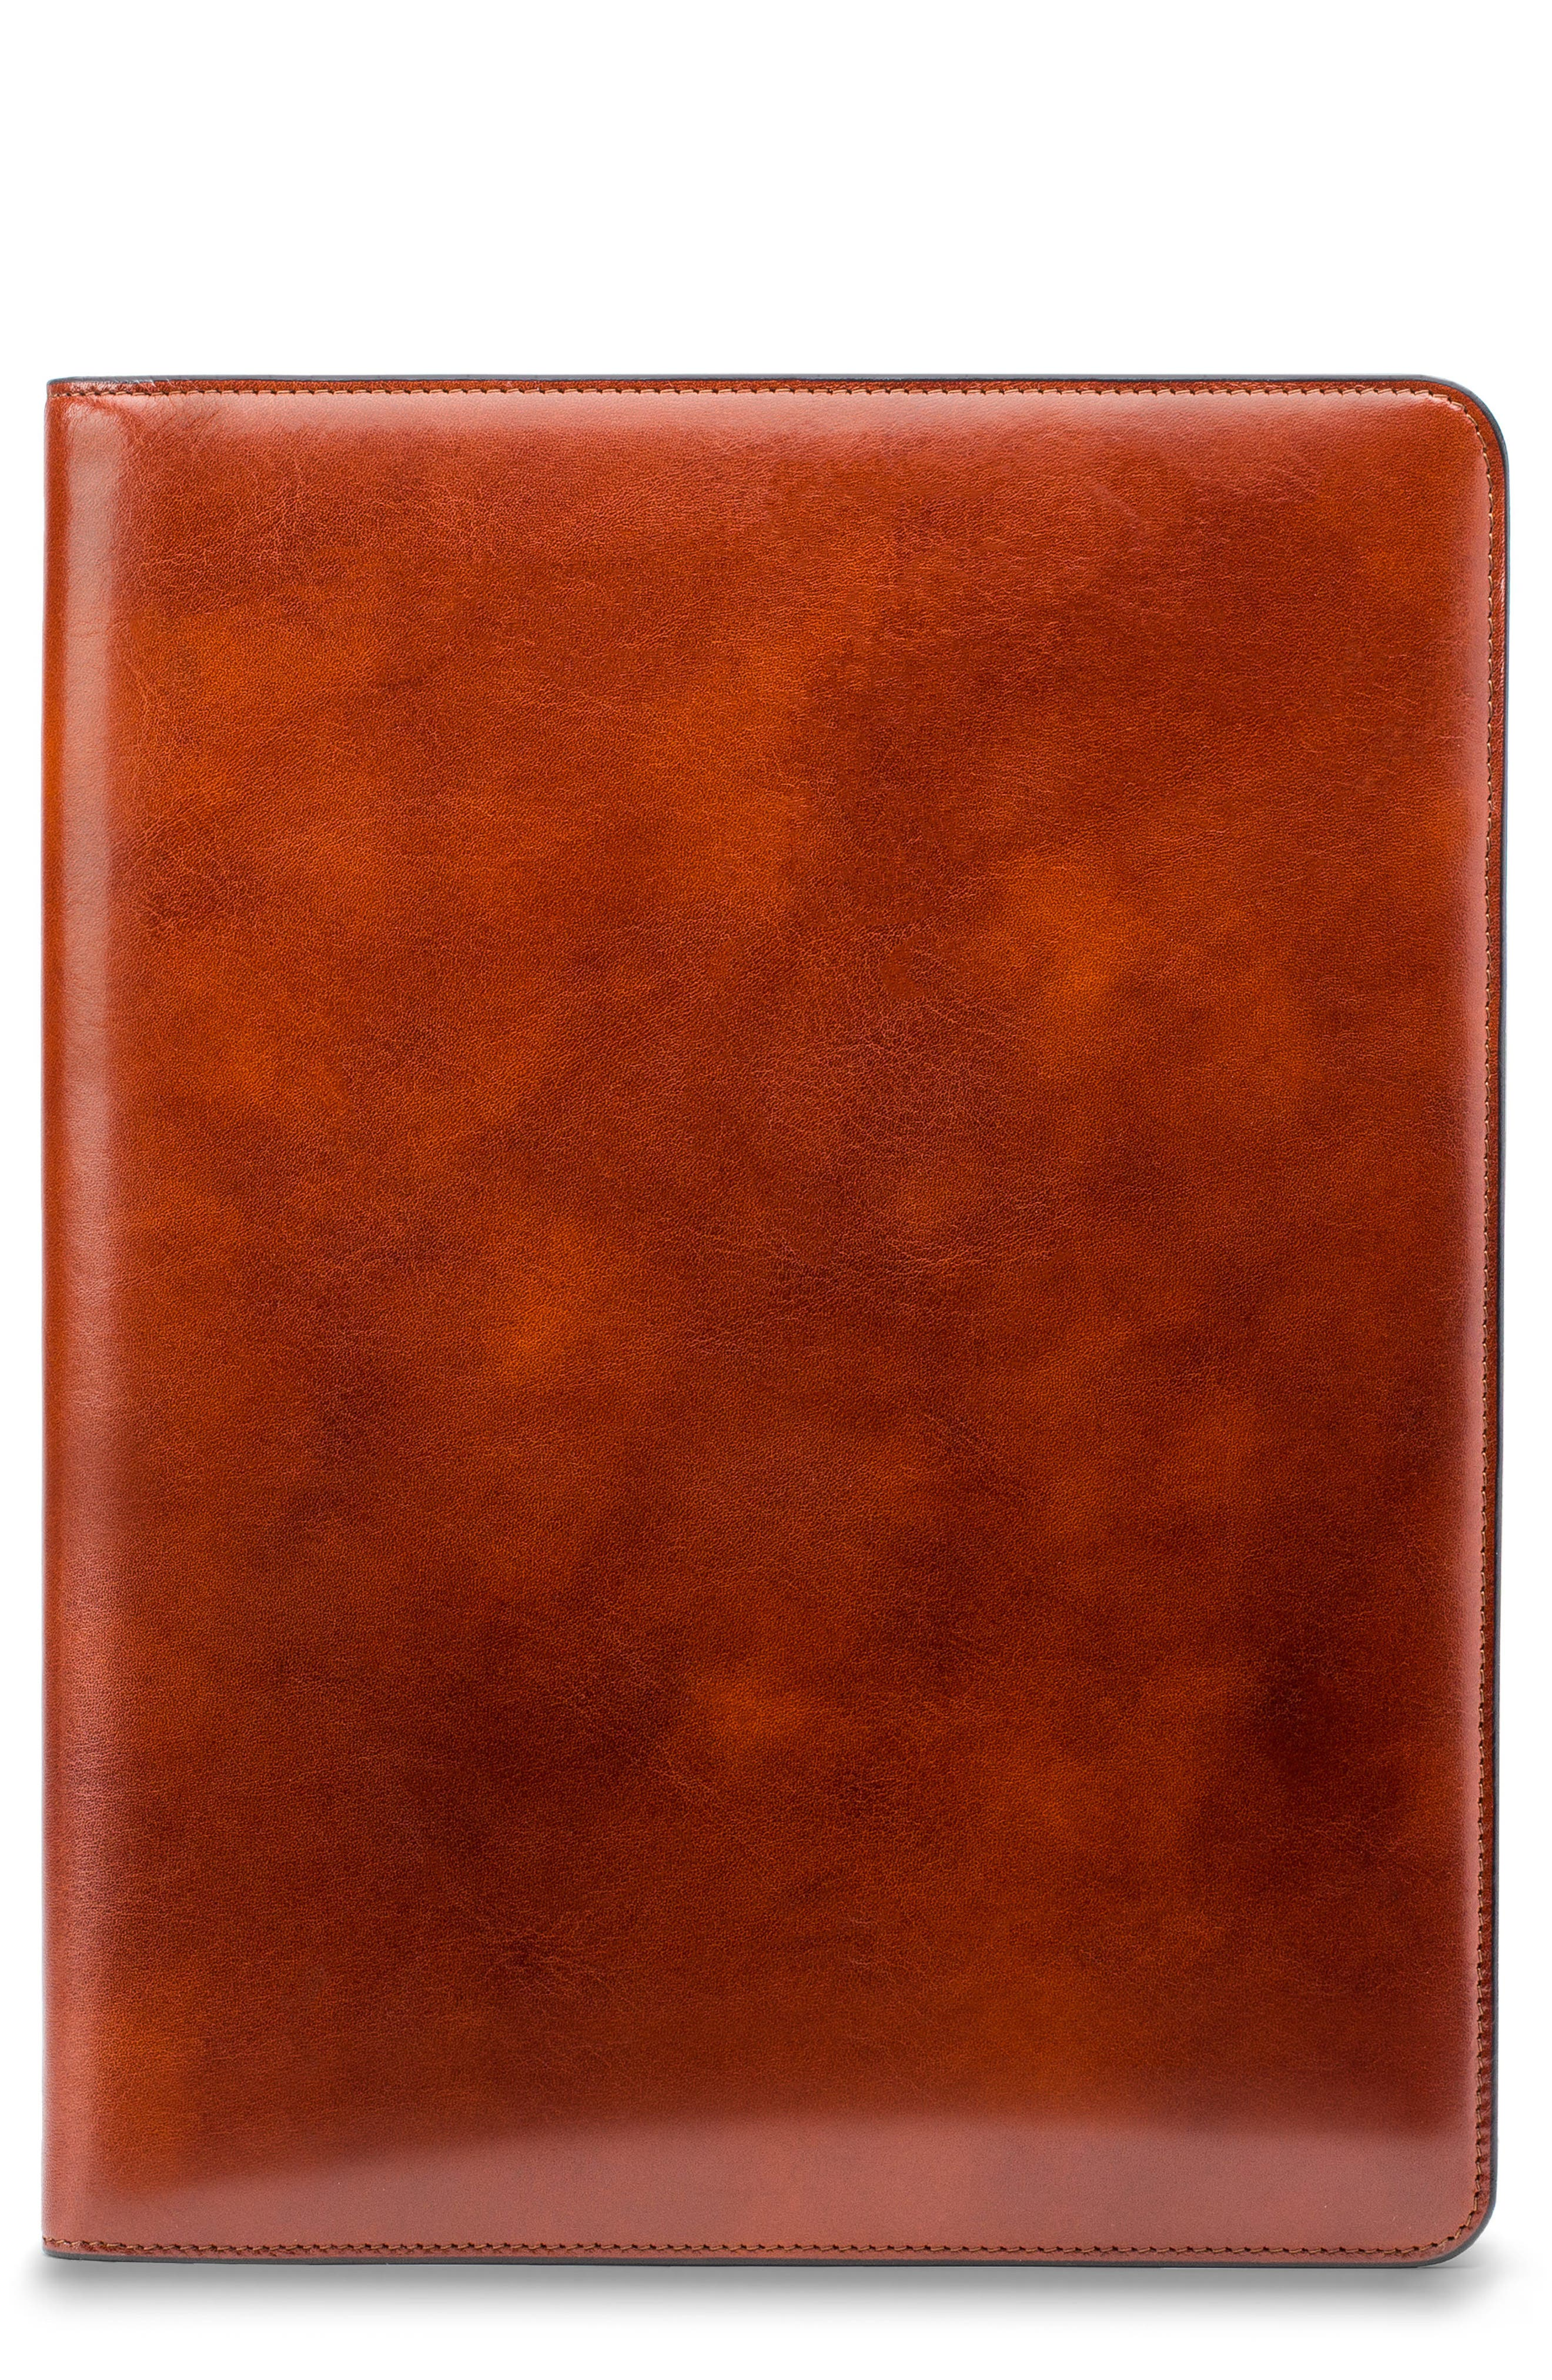 Leather Writing Pad Cover